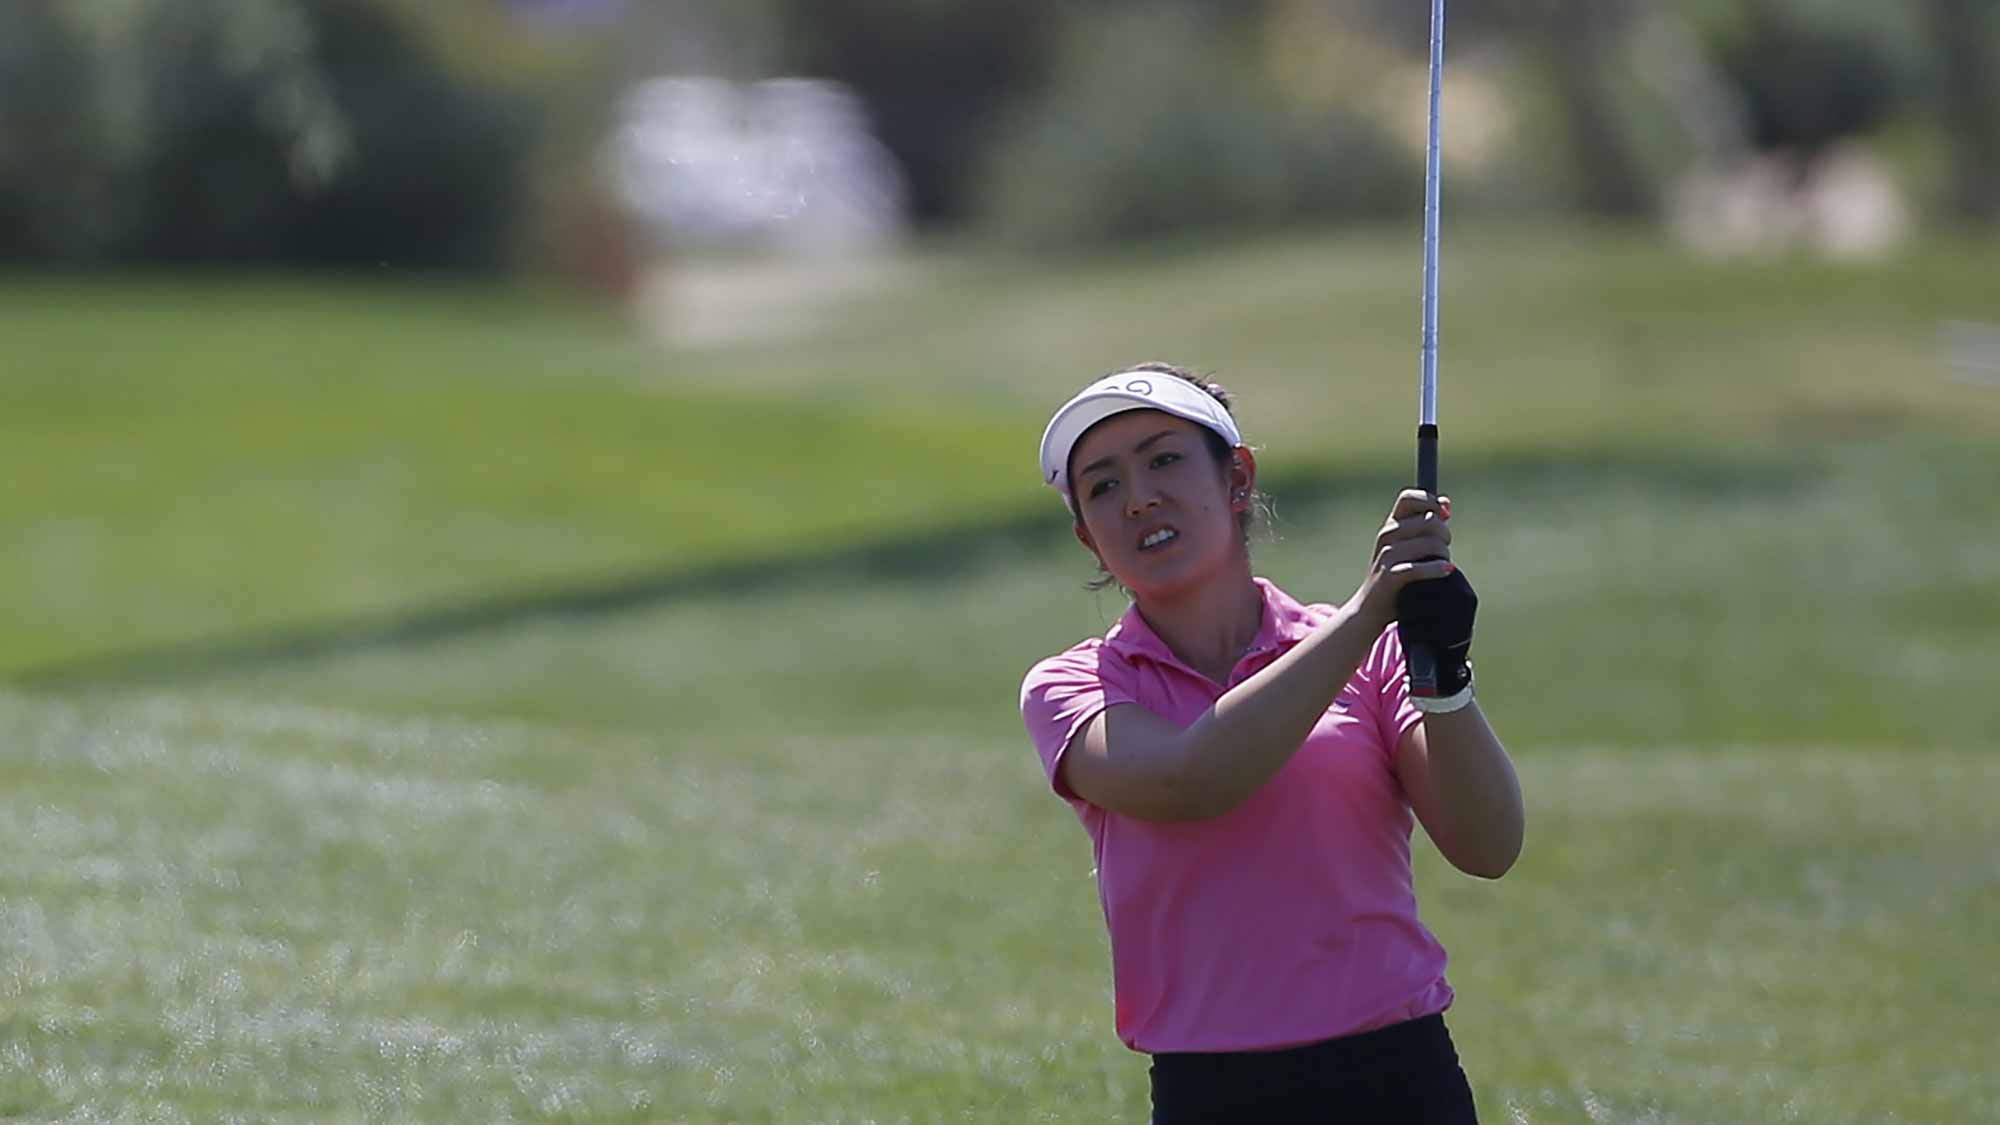 Hannah O'Sullivan hits a shot on the first hole during the third round of the LPGA JTBC Founders Cup at Wildfire Golf Club